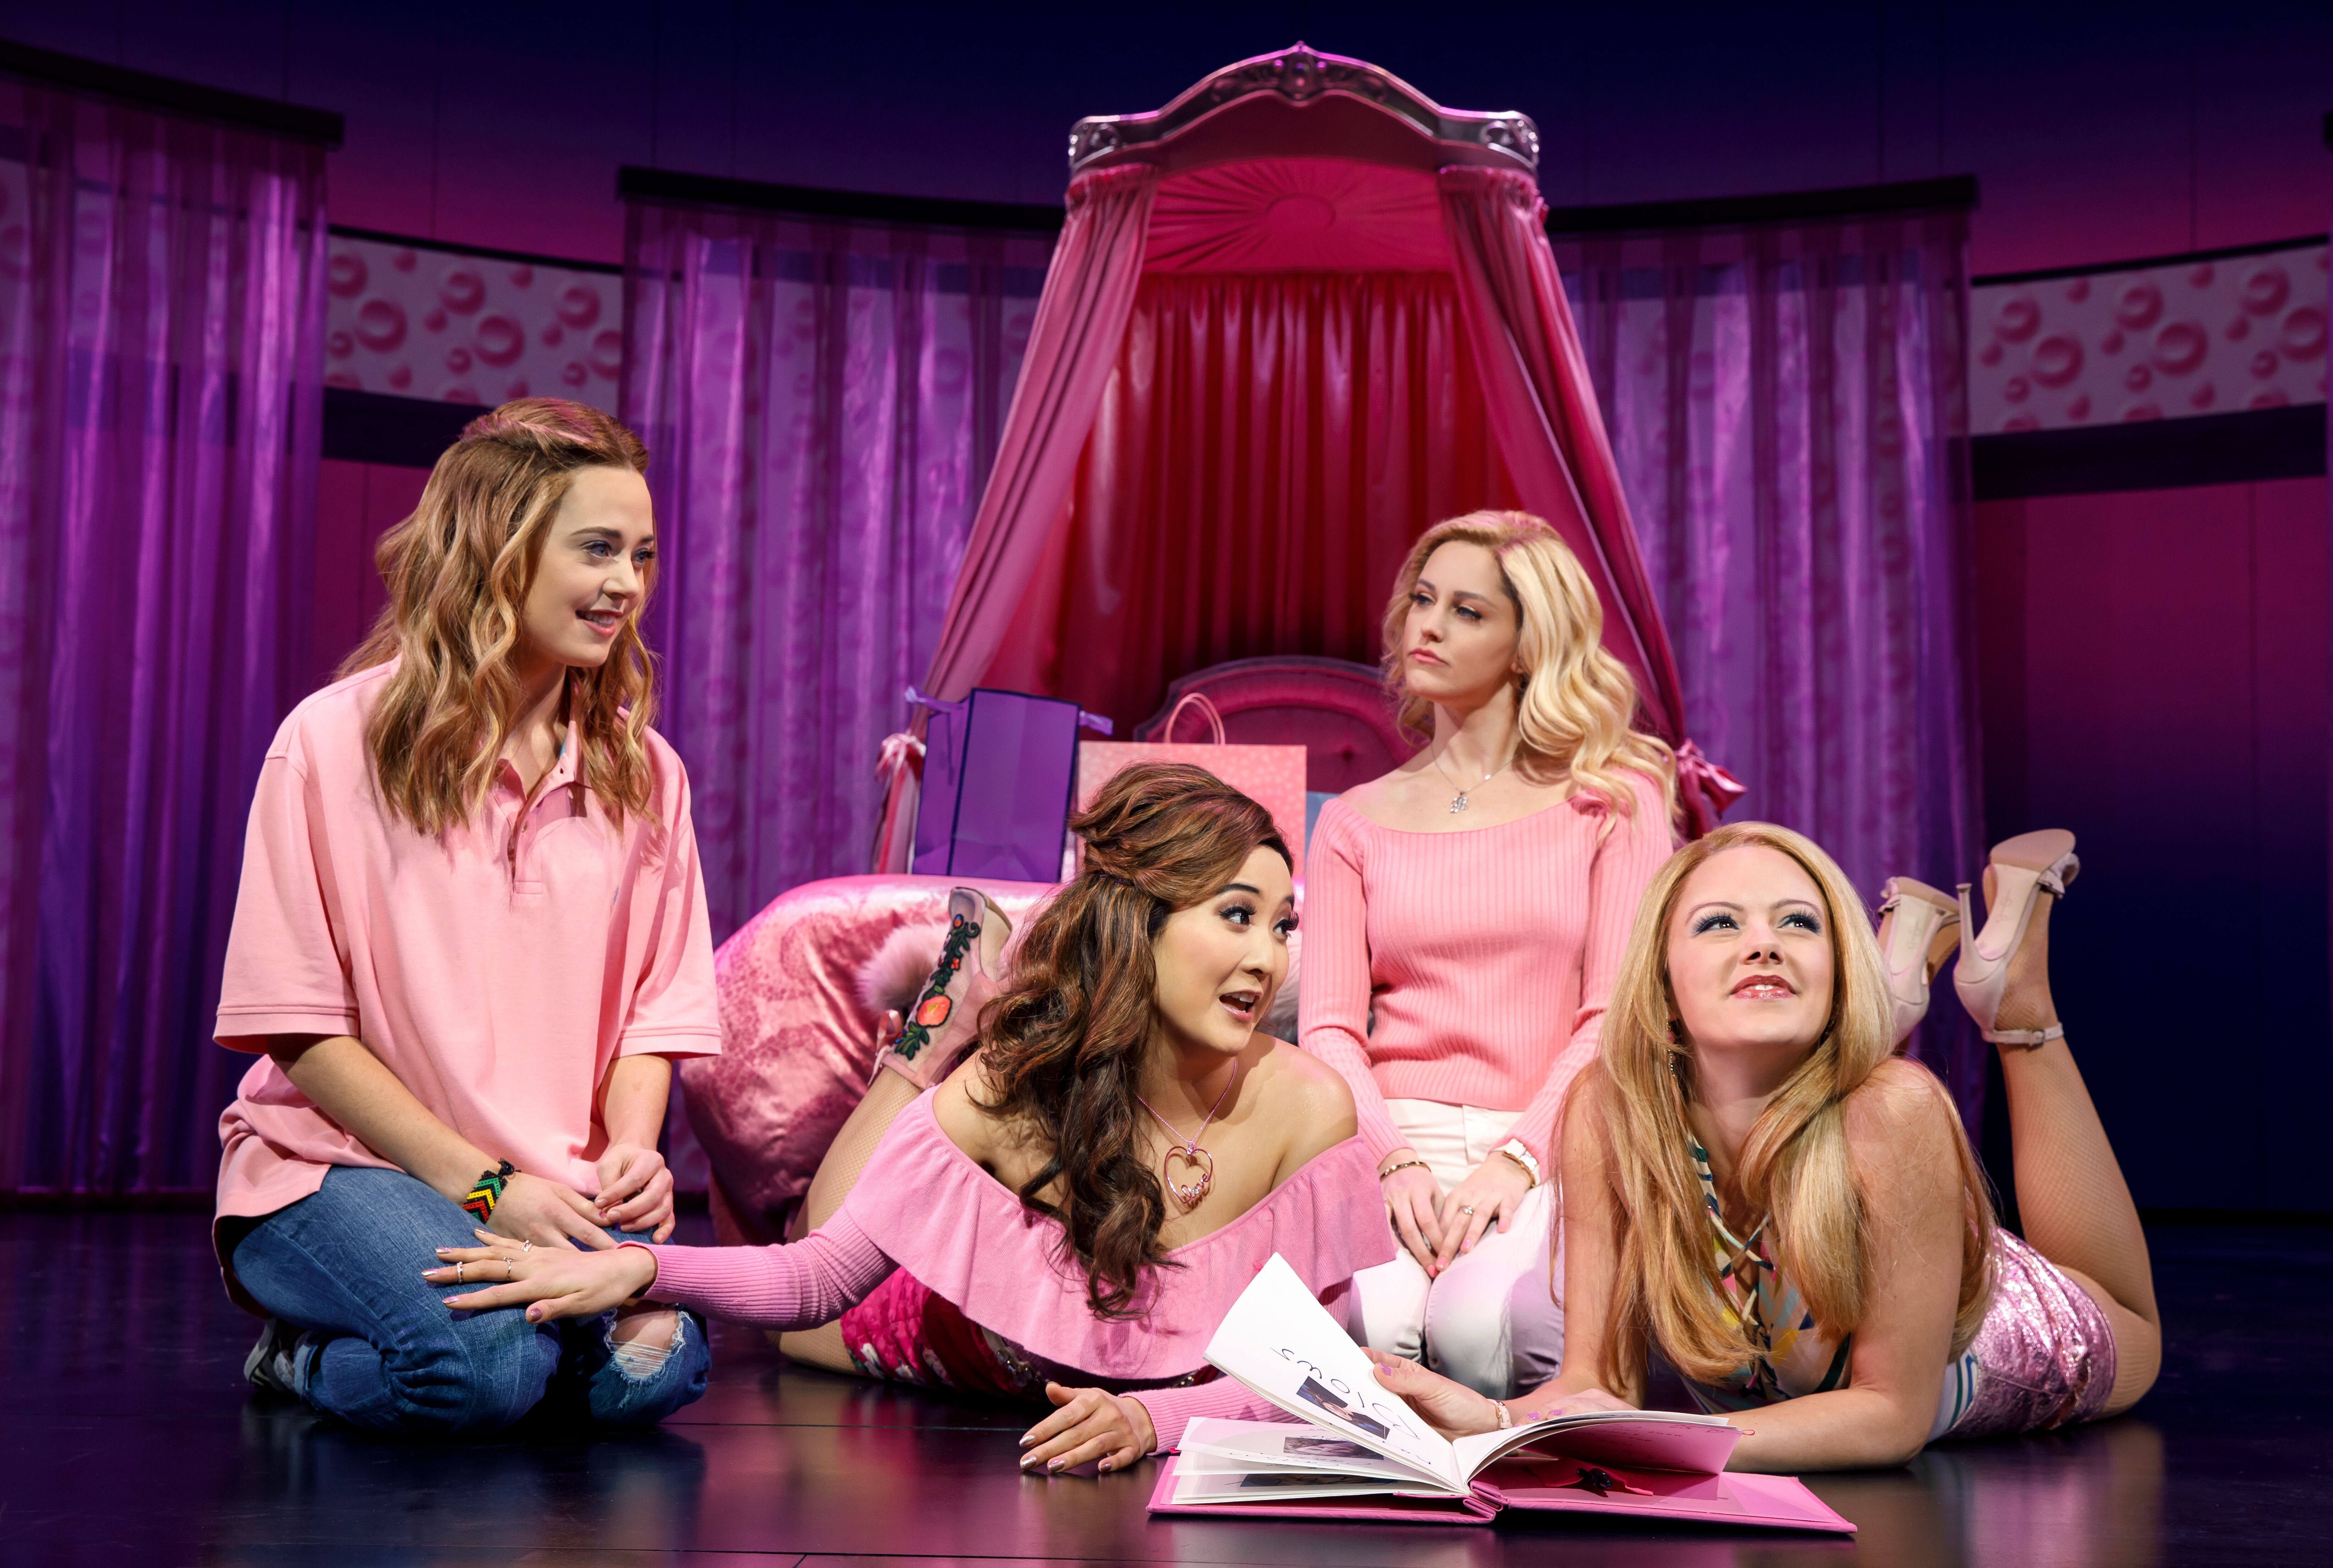 Seattle Events Calendar 2020 Mean Girls at Paramount Theatre in Seattle, WA on Aug 4–9, 2020